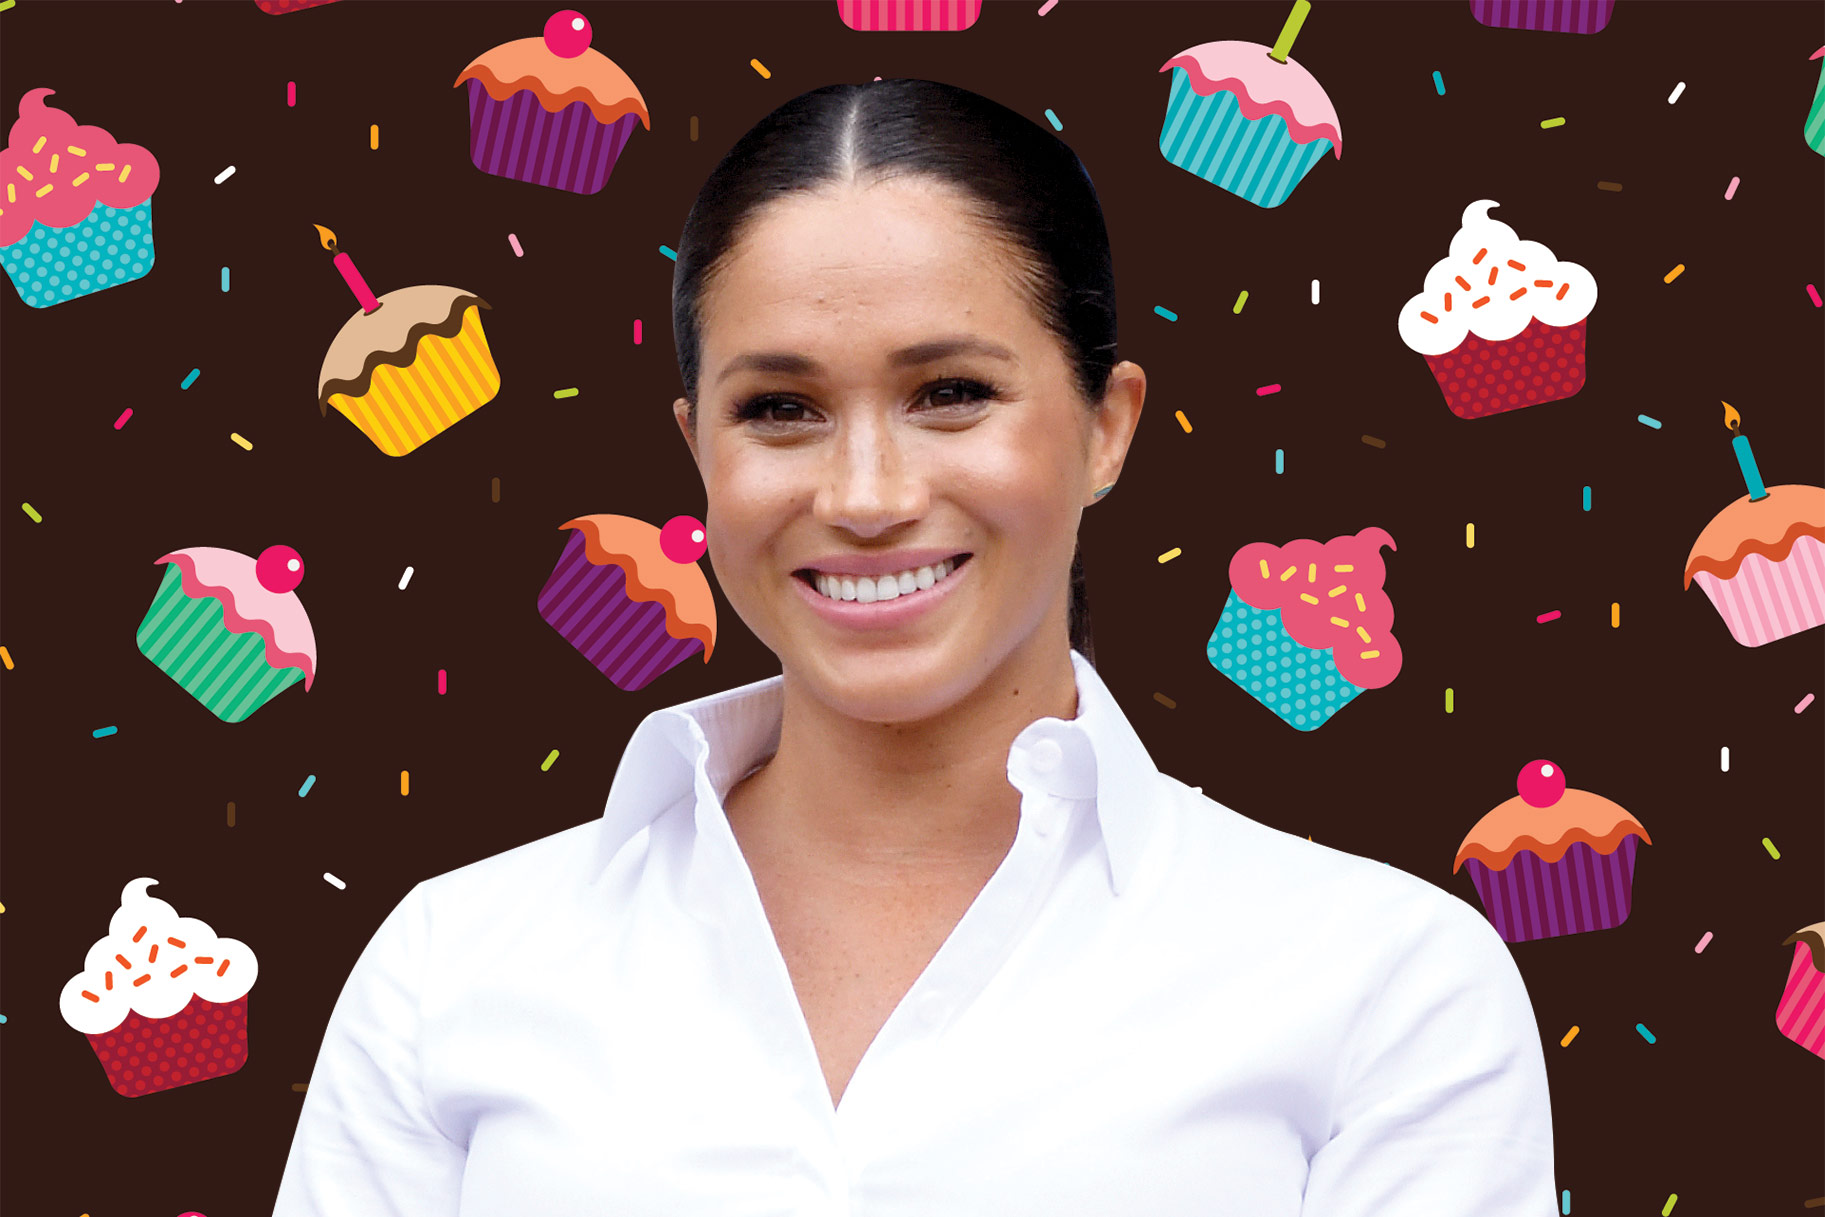 meghan-markle-royal-birthday-cake.jpg